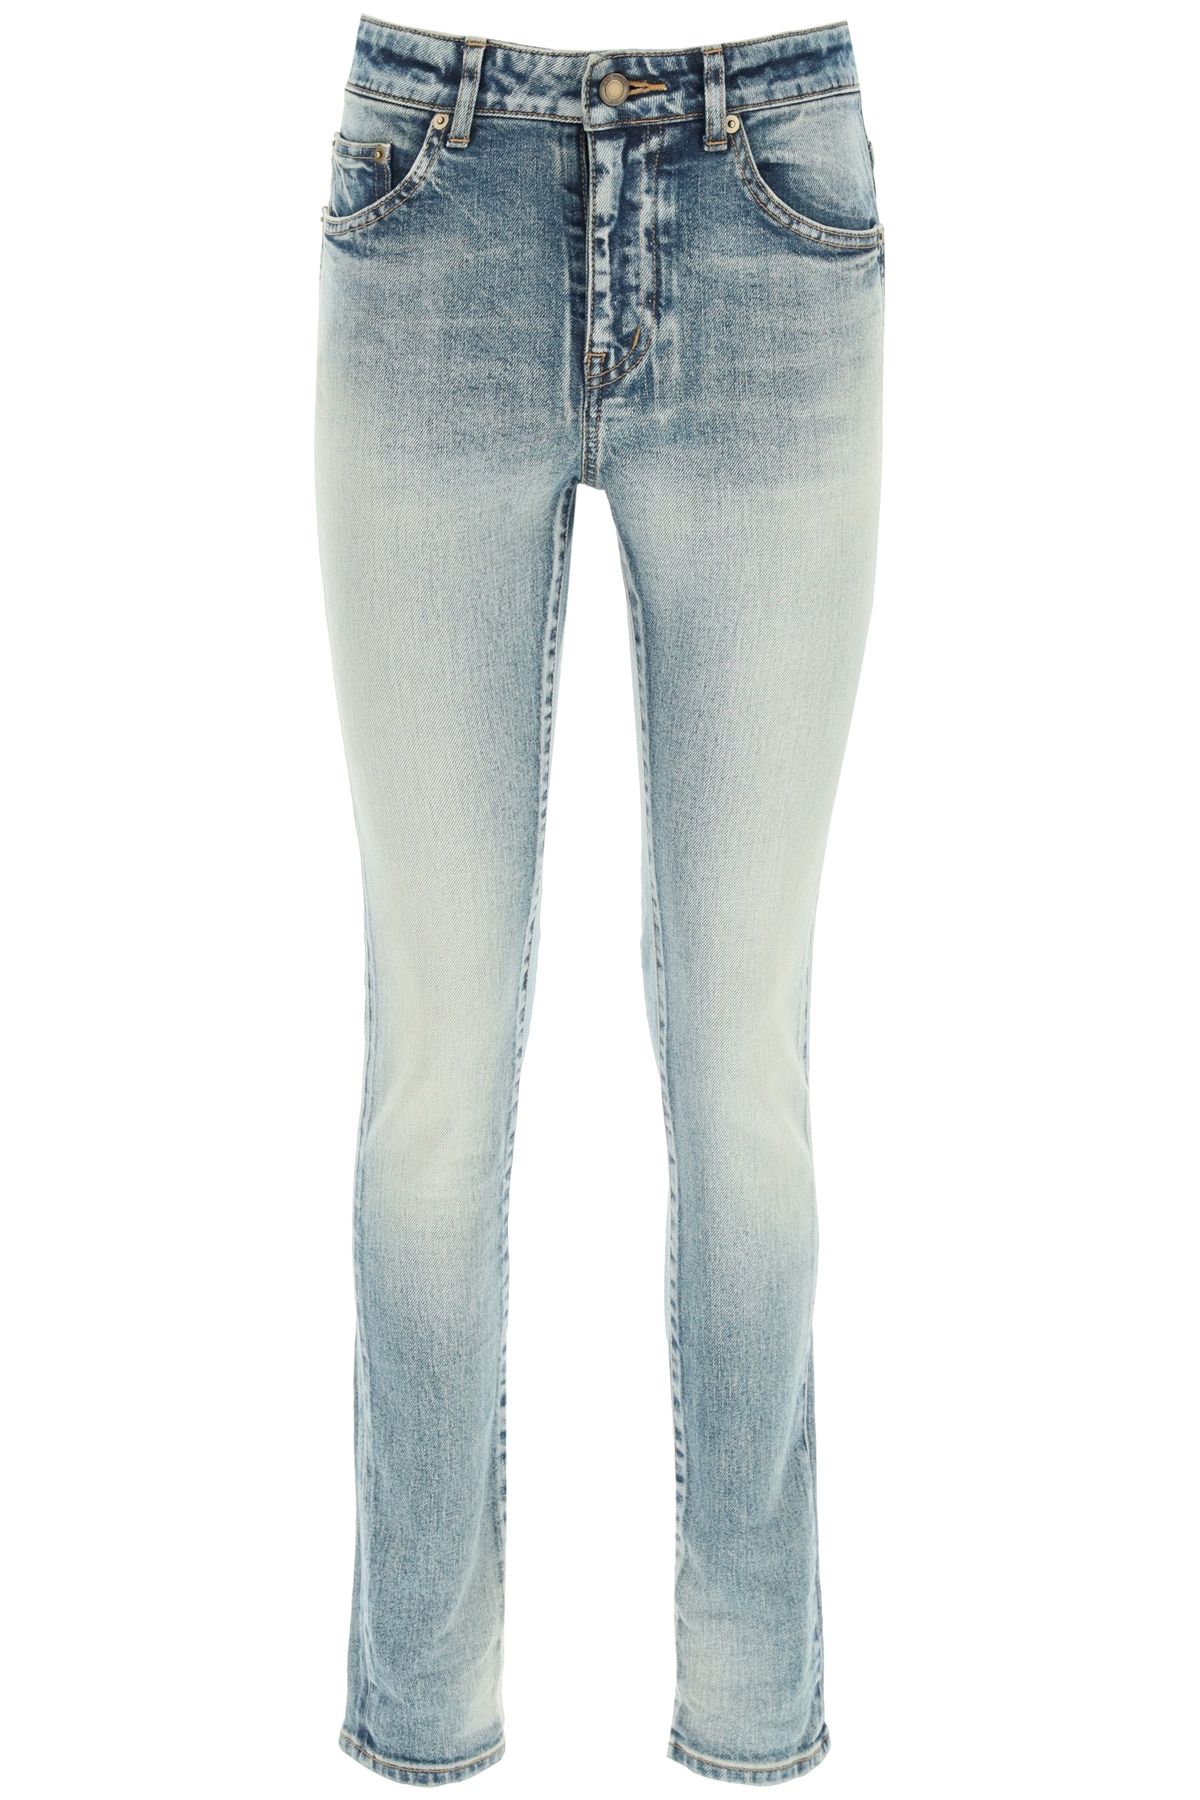 SAINT LAURENT SKINNY DENIM JEANS 28 Blue, Light blue Cotton, Denim